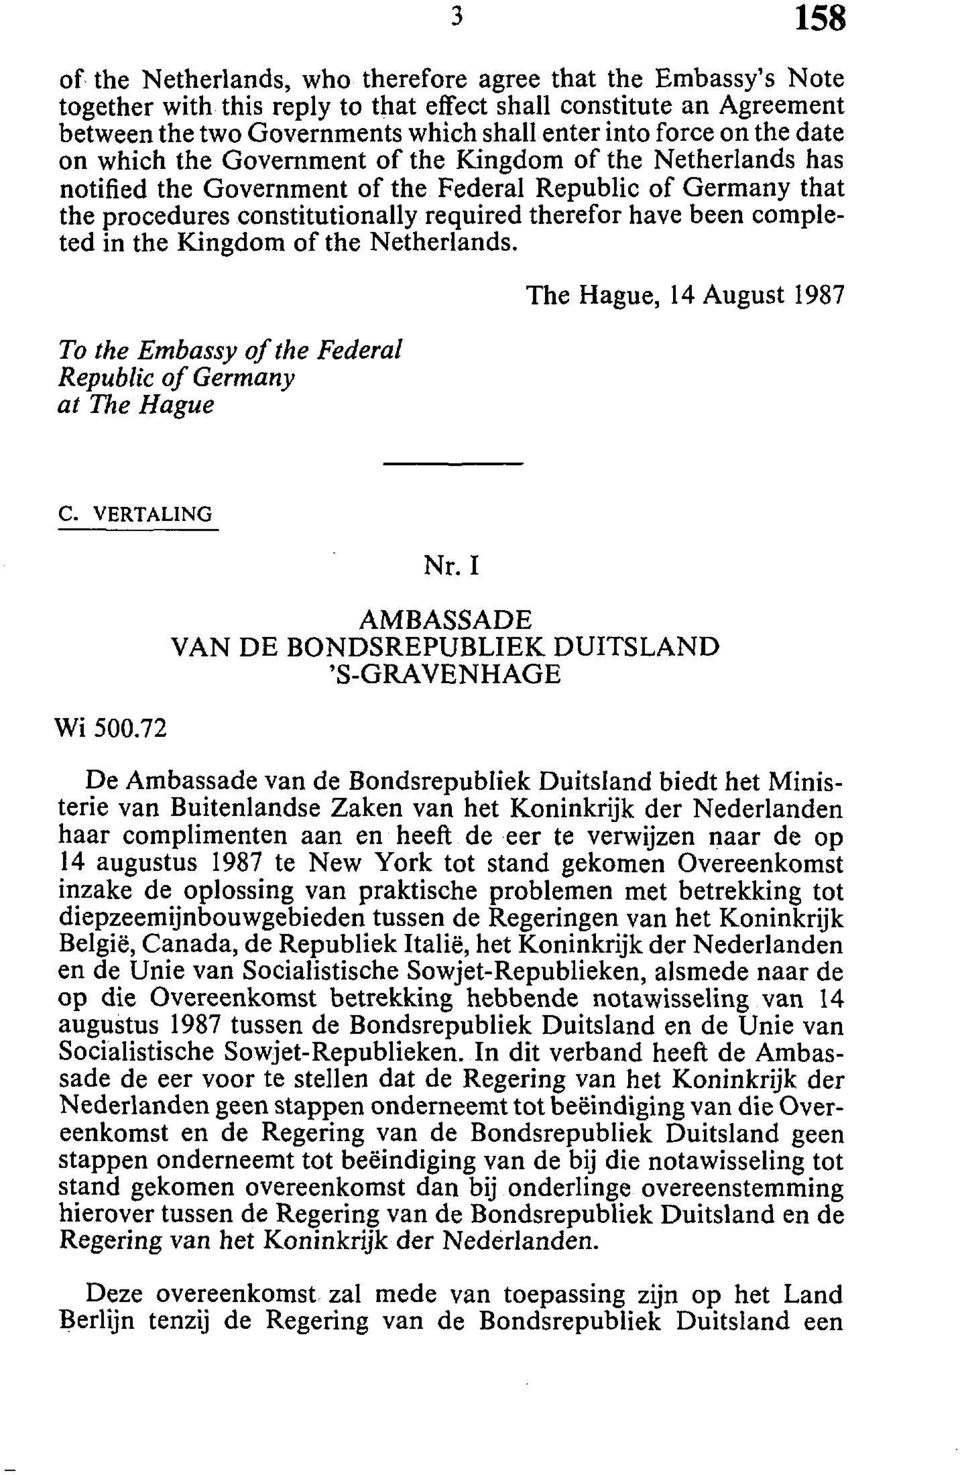 completed in the Kingdom of the Netherlands. To the Embassy of the Federal Republic of Germany at The Hague The Hague, 14 August 1987 C. VERTALING Wi 500.72 Nr.